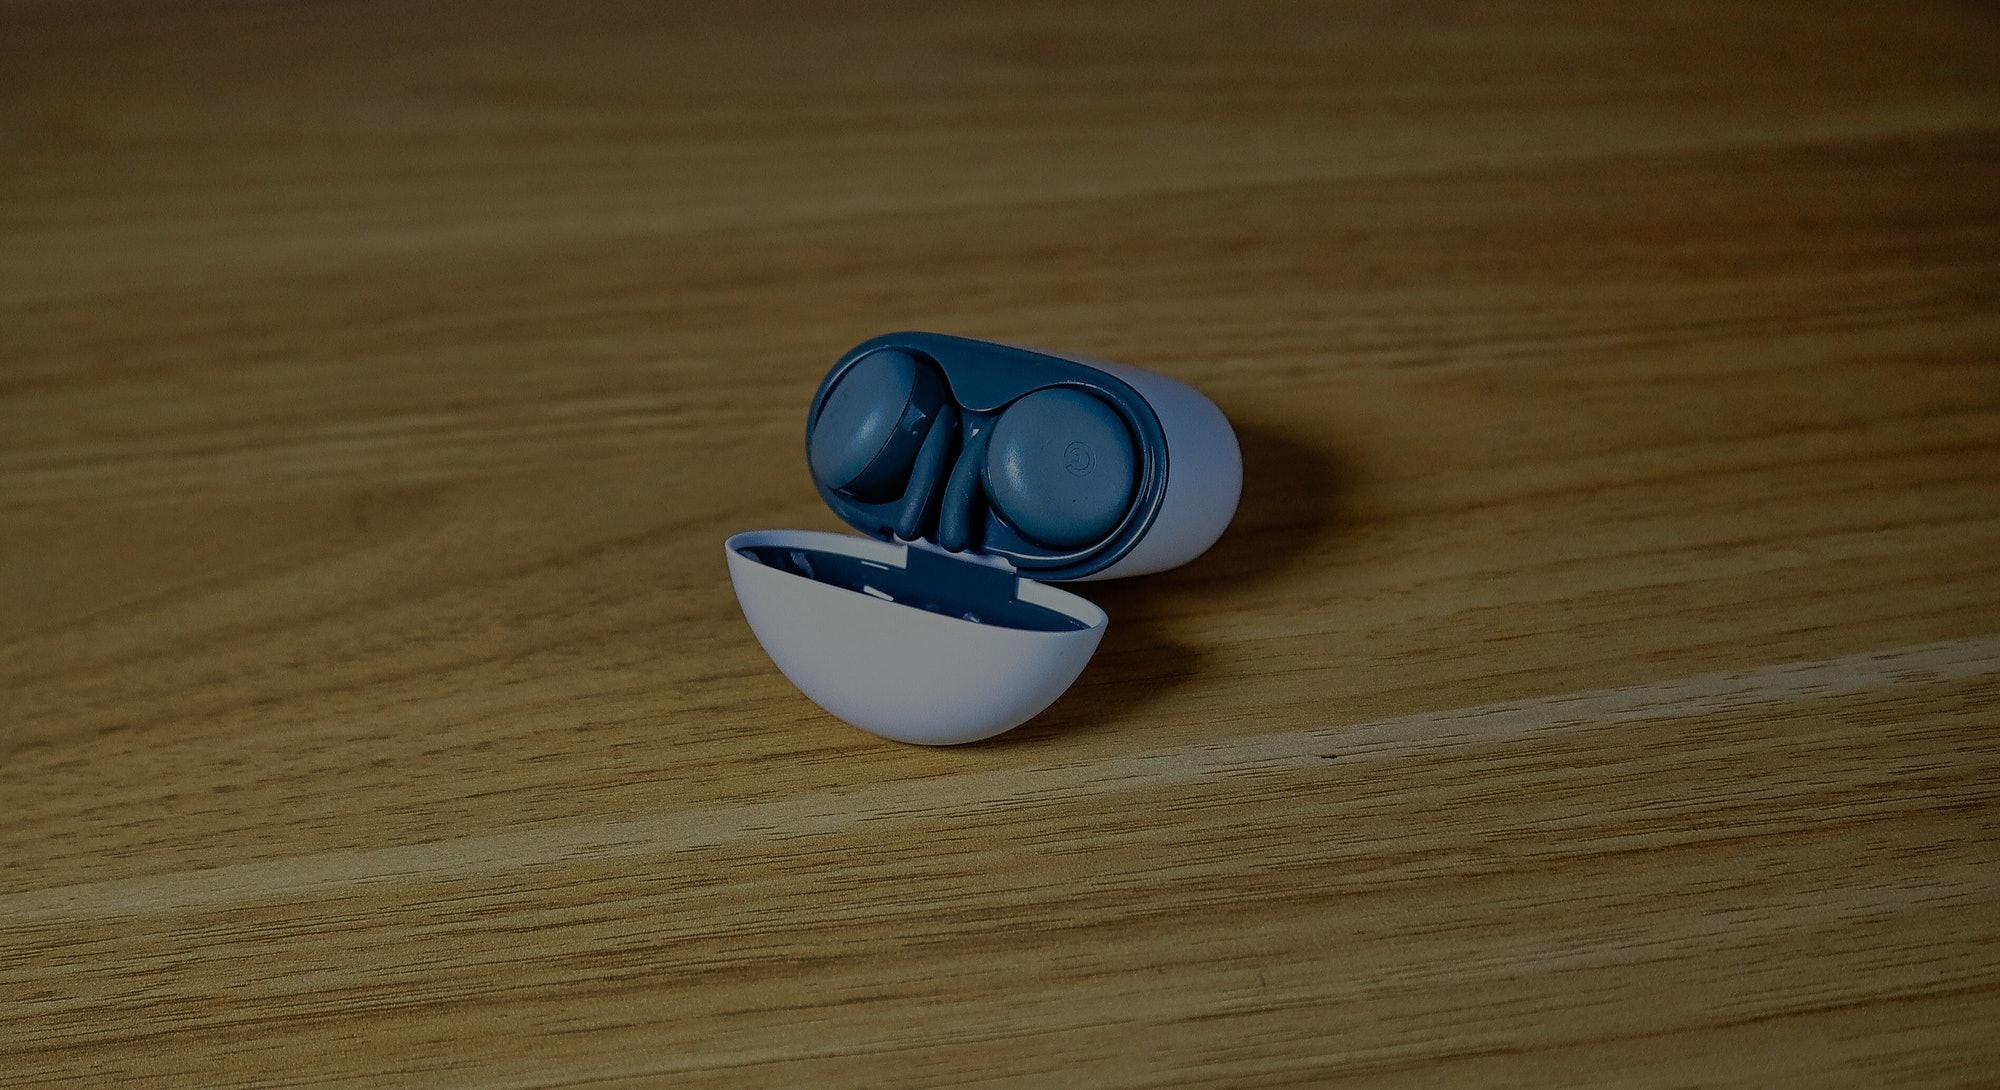 Google Pixel Buds Series-A review: Google's third try at true wireless earbuds nails it